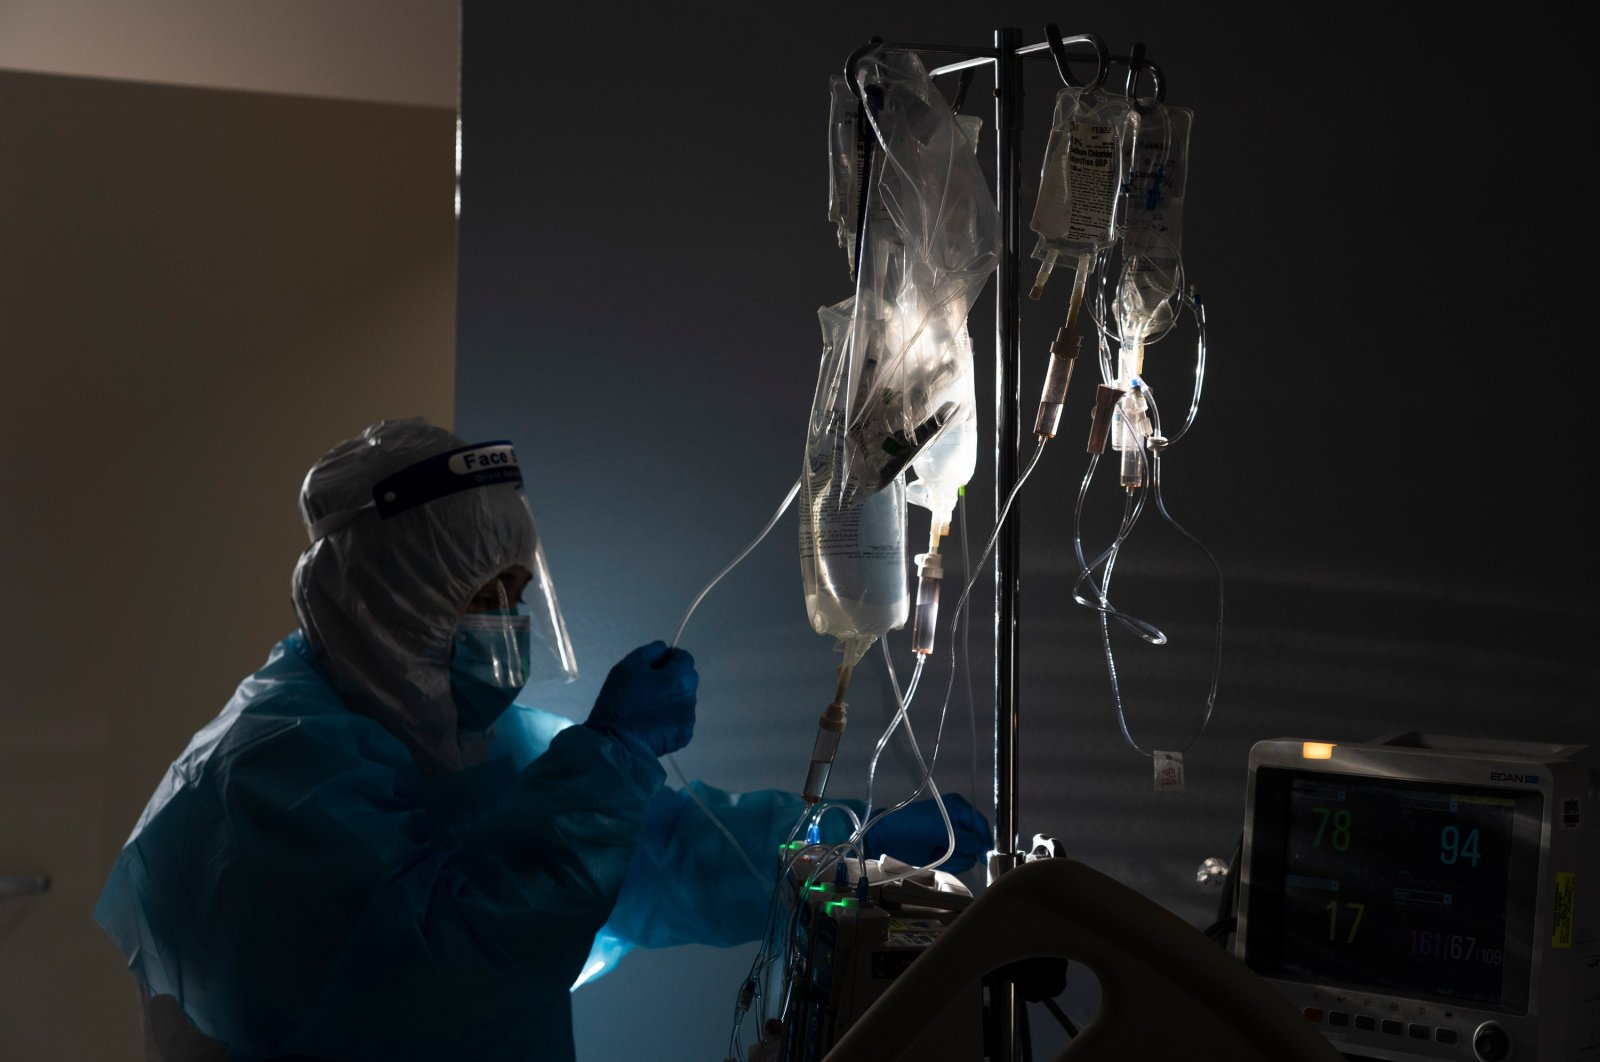 A medical staff member treats a patient suffering from the coronavirus disease in the COVID-19 intensive care unit (ICU) at the United Memorial Medical Center, Houston, Texas, Nov. 14, 2020. (Getty Images)